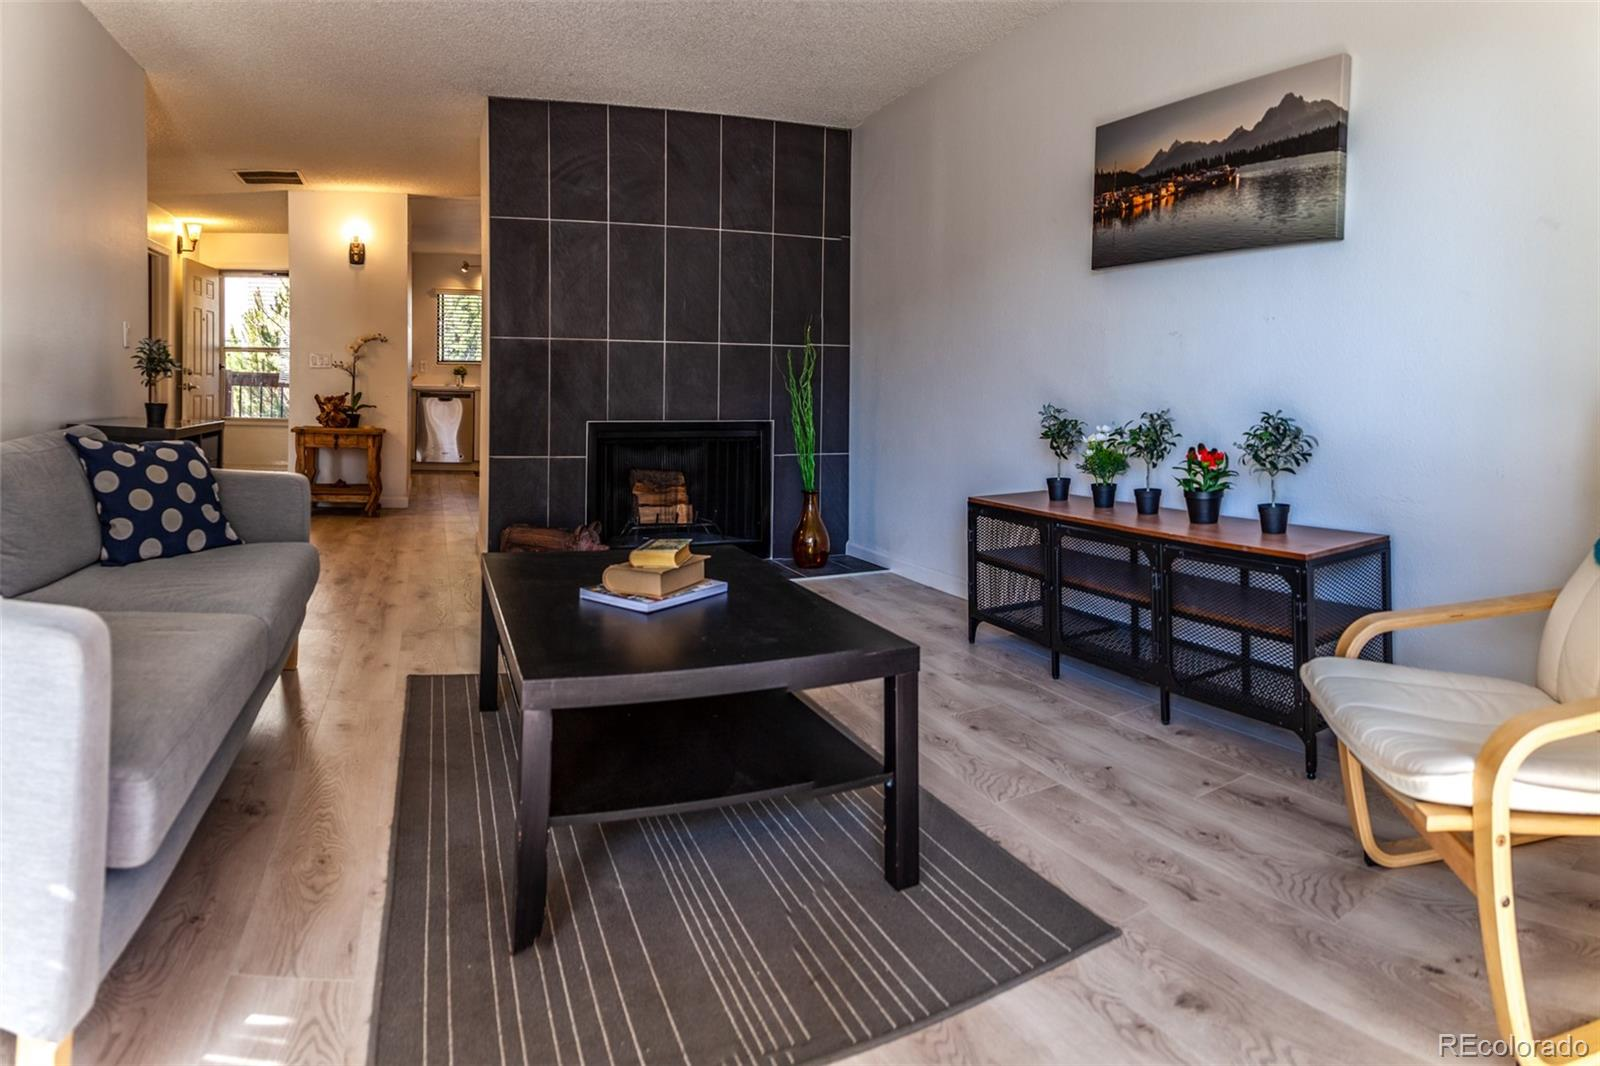 Come check out this beautifully updated condo today! Beautiful new engineered hardwood (10 mil) runs throughout the kitchen and the living areas. The kitchen has been transformed with new floor-to-ceiling cabinets, new counter tops and stainless steel appliances.  Off the kitchen you'll find a cozy dining area. The living room has tons of natural light, a freshly faced wood-burning fireplace and a sliding door leading to the back patio. A HUGE bedroom sits off the back of the unit, complete with a large walk-through closet with access to the bathroom. The updated bathroom boasts new tile and vanity, and is accessible from the living area or the bedroom. In-unit laundry with stackable W/D included. All-new fixtures and lighting. Blue Ribbon Warranty Gold Plan Through May 23rd, 2020. Furnace & AC serviced and checked in May 2019. Wood-burning Fireplace Just Cleaned & Serviced. New H.W. Heater 2019. Exterior HOA renovations are completed now (Decking, Siding, Etc.) . This building and the complex has a cleaner and fresher look now. Brand new housing/mixed use development going in near 84th and Federal. Good access to the highways. Come take a look today- it won't last long!